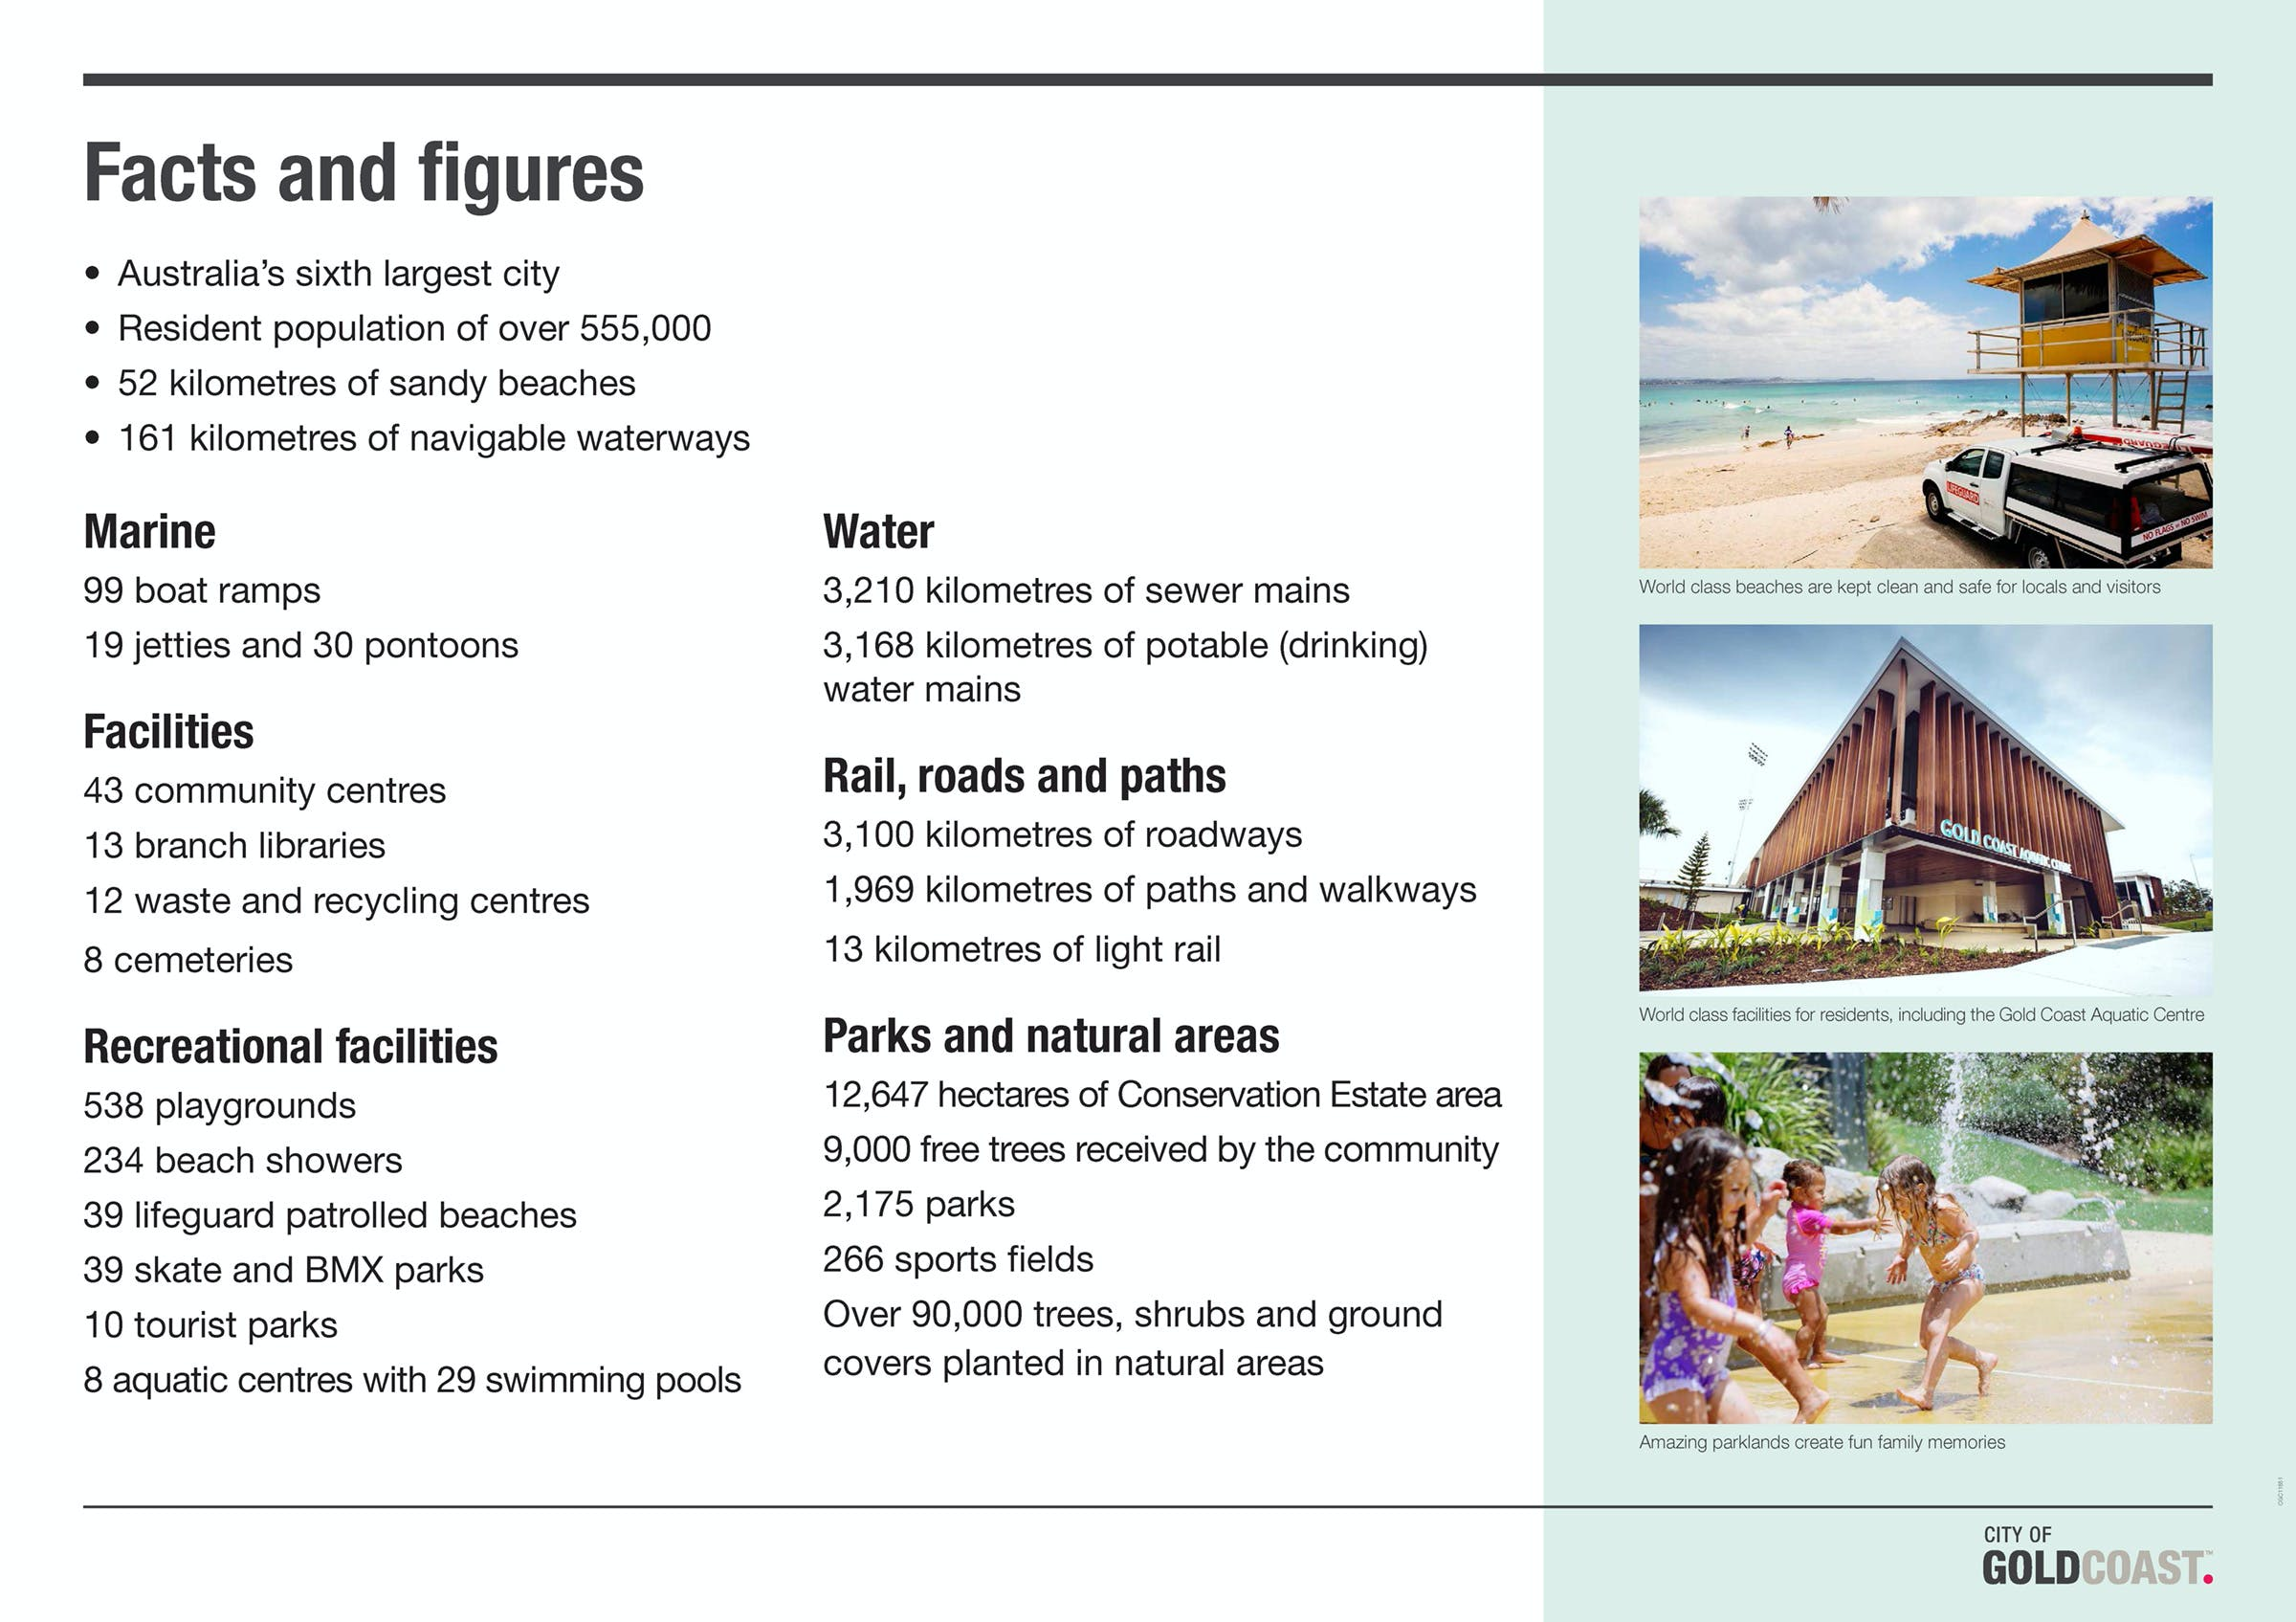 City facts and figures